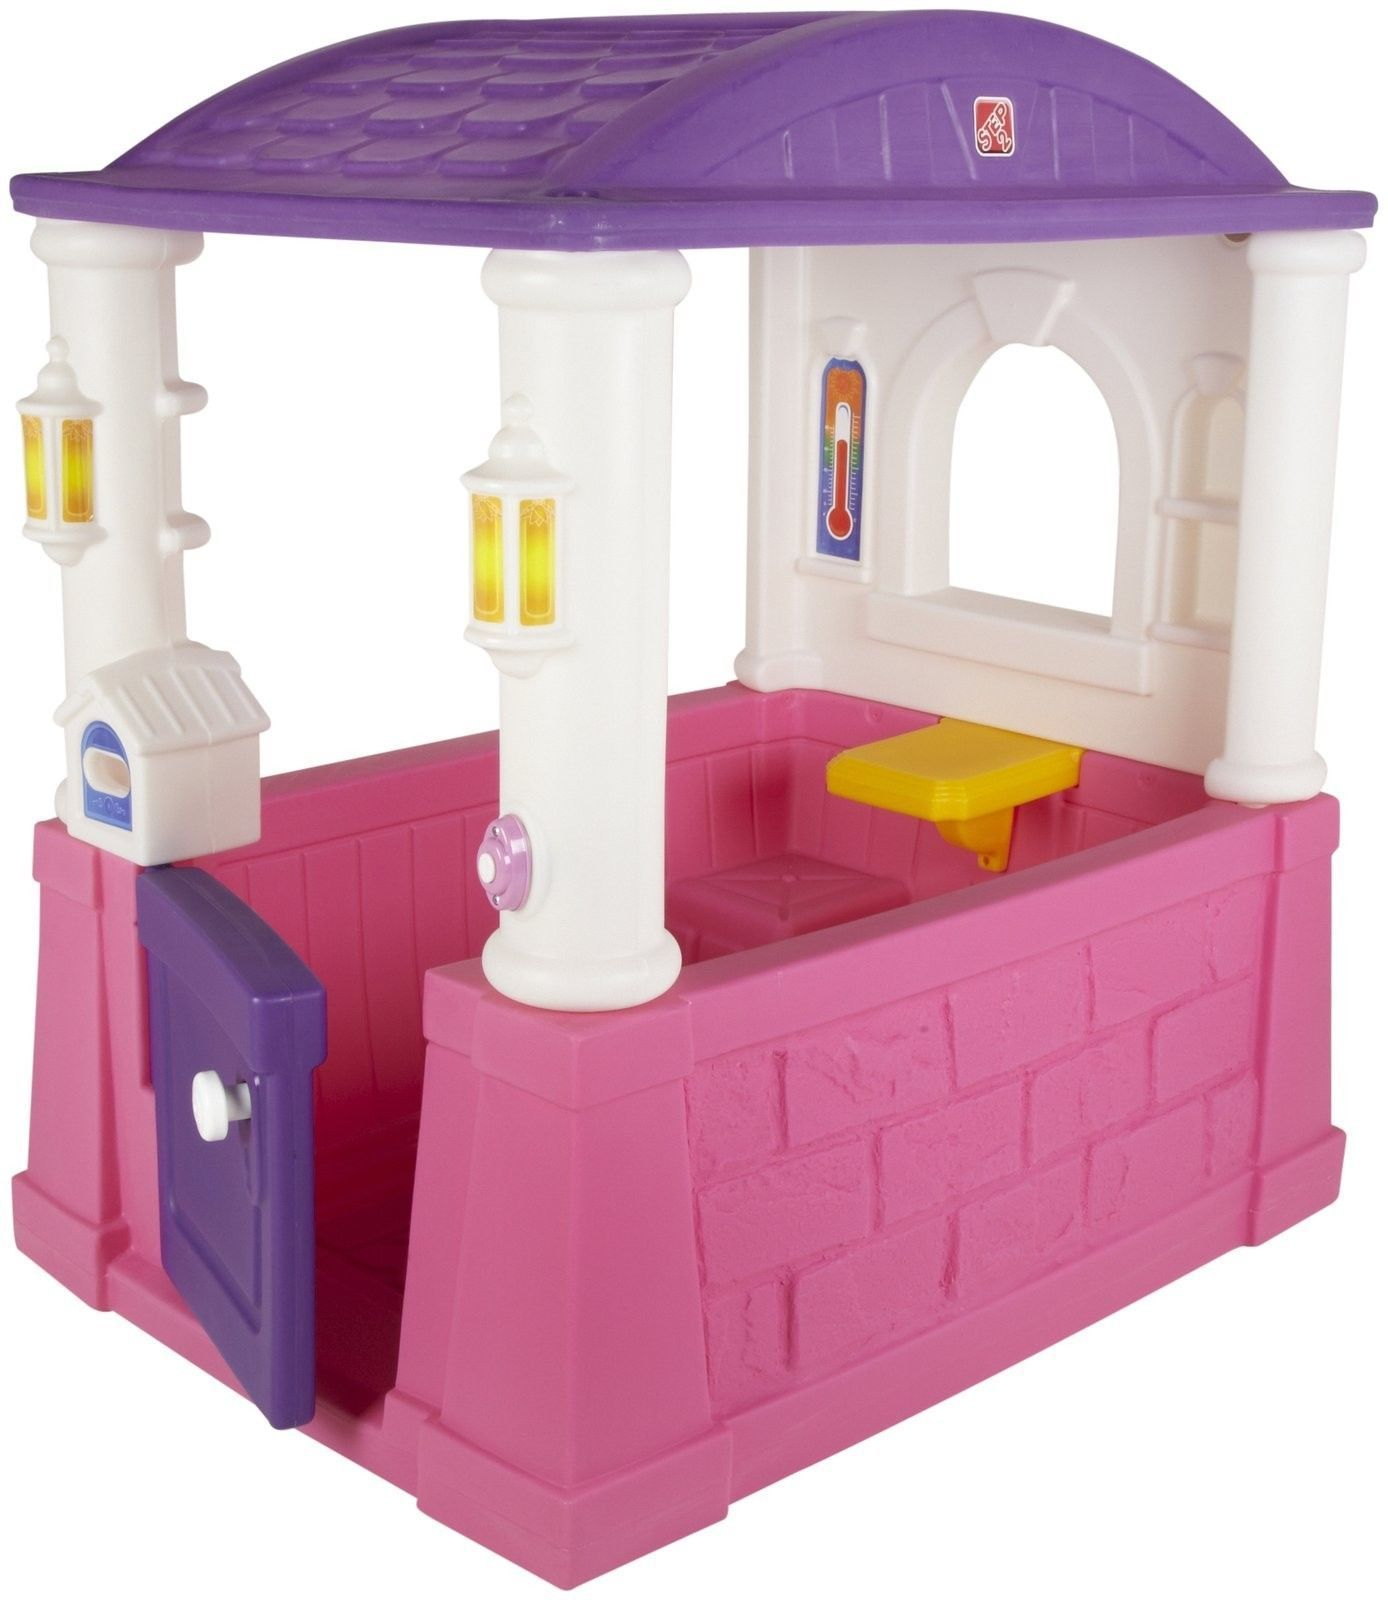 Used Step 2 Playhouse For Sale 146 Ads In Us